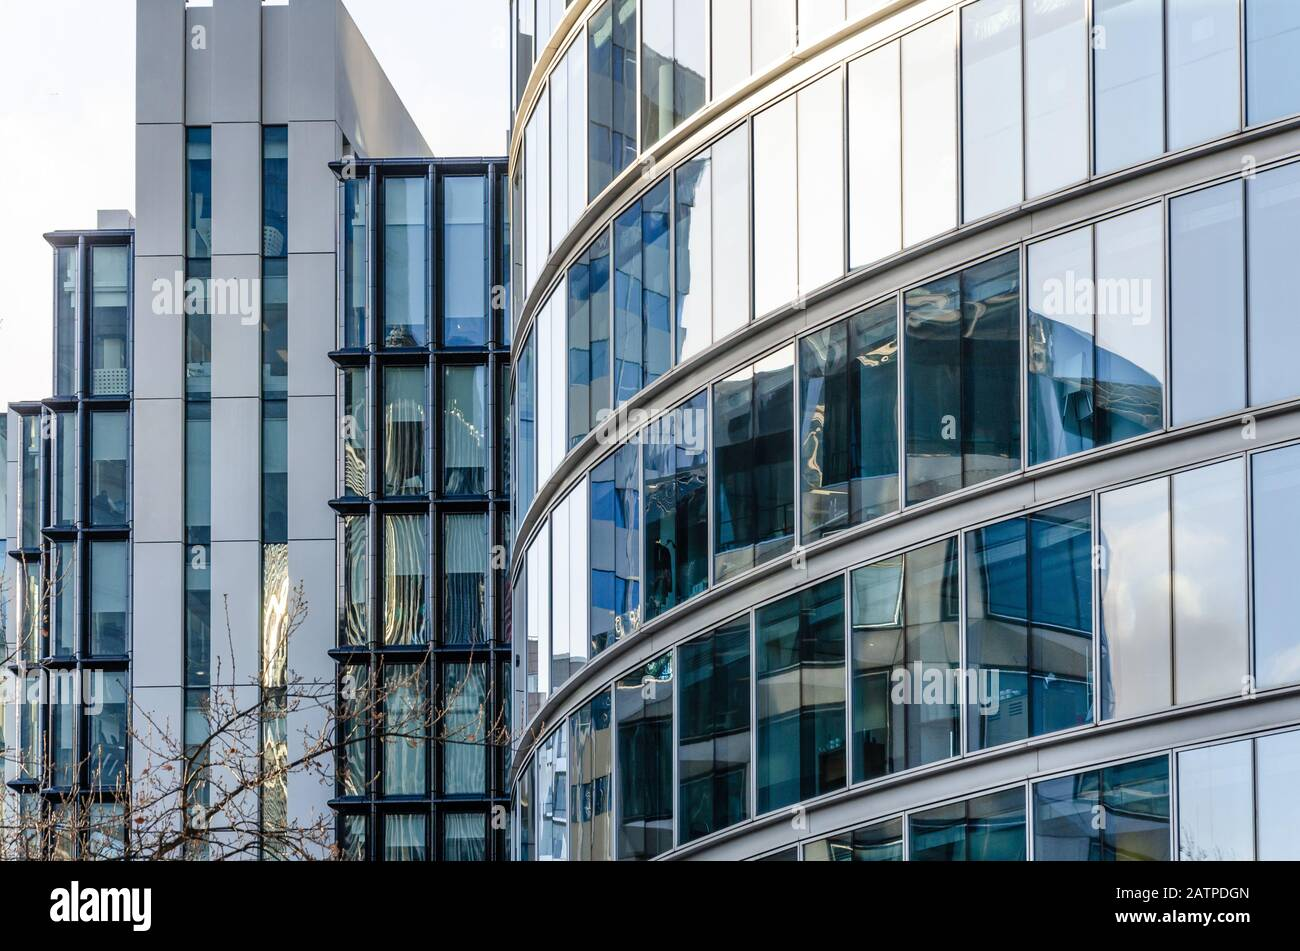 close-up-view-of-detail-on-a-modern-glass-building-with-reflective-glass-and-contemporary-design-2ATPDGN.jpg